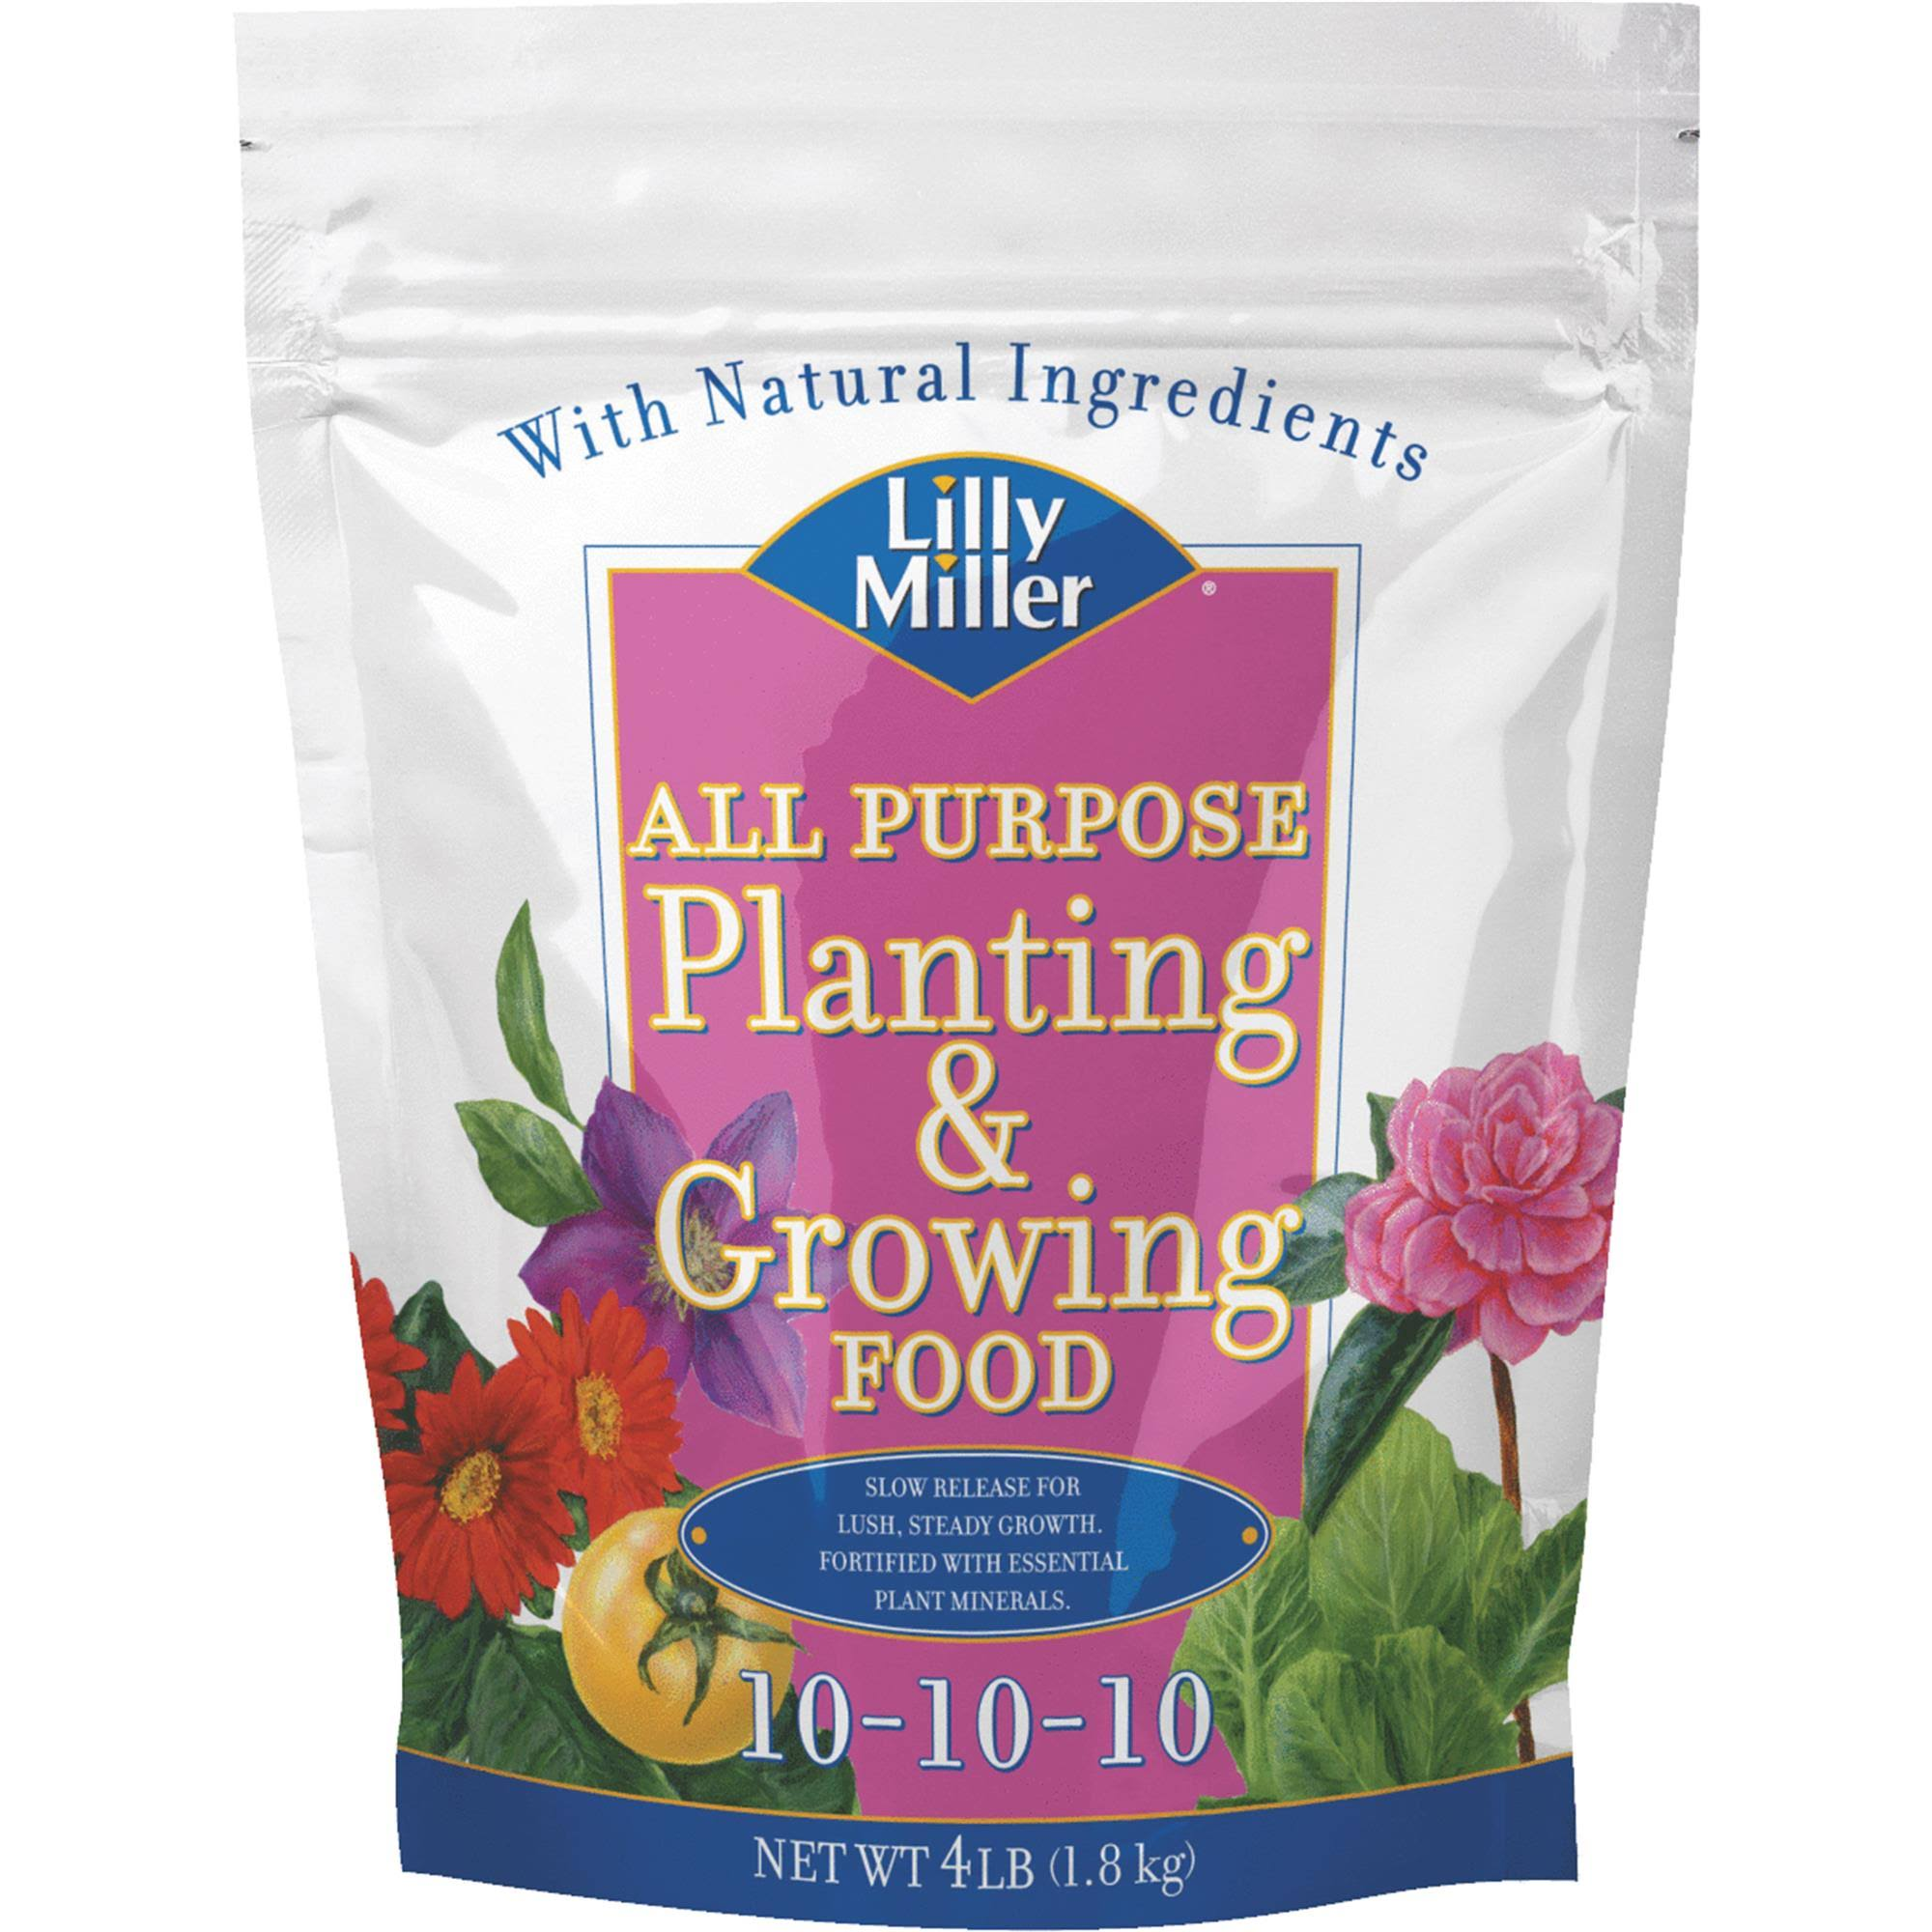 Lilly Miller All Purpose Planting and Growing Food 10-10-10 Fertilizer - 4lbs